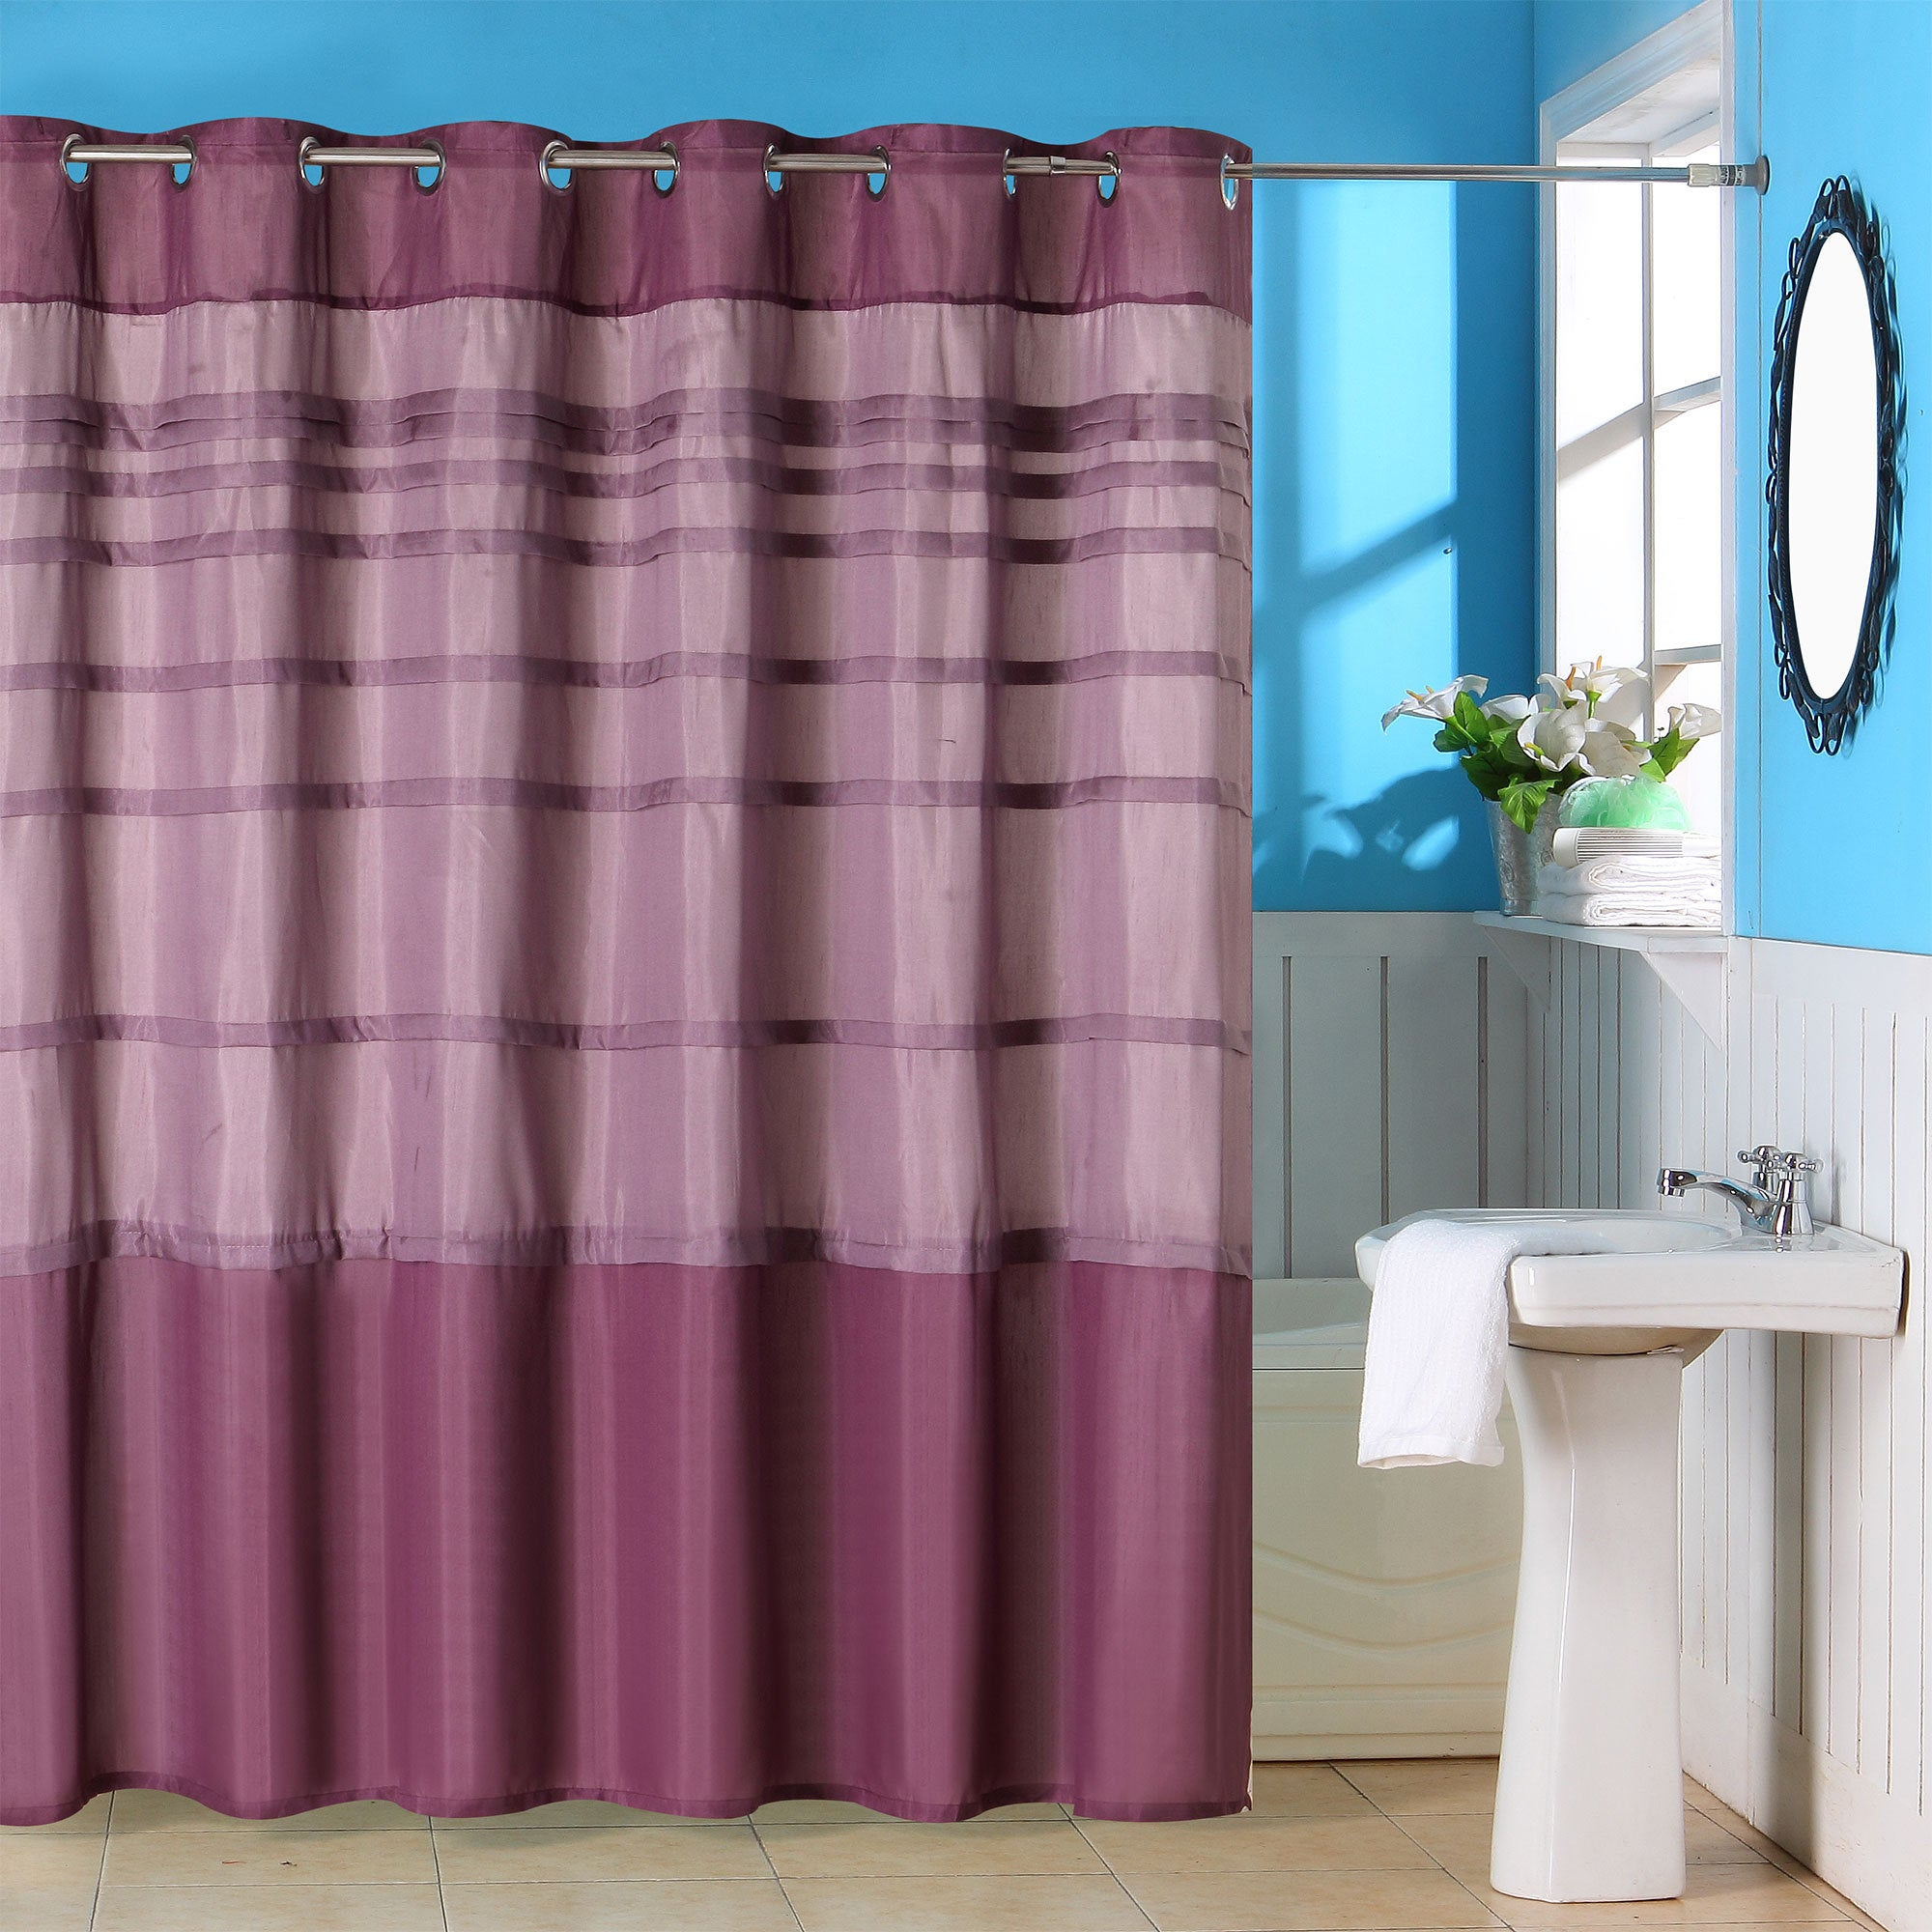 Windsor Home Striped Purple Shower Curtain With Grommets